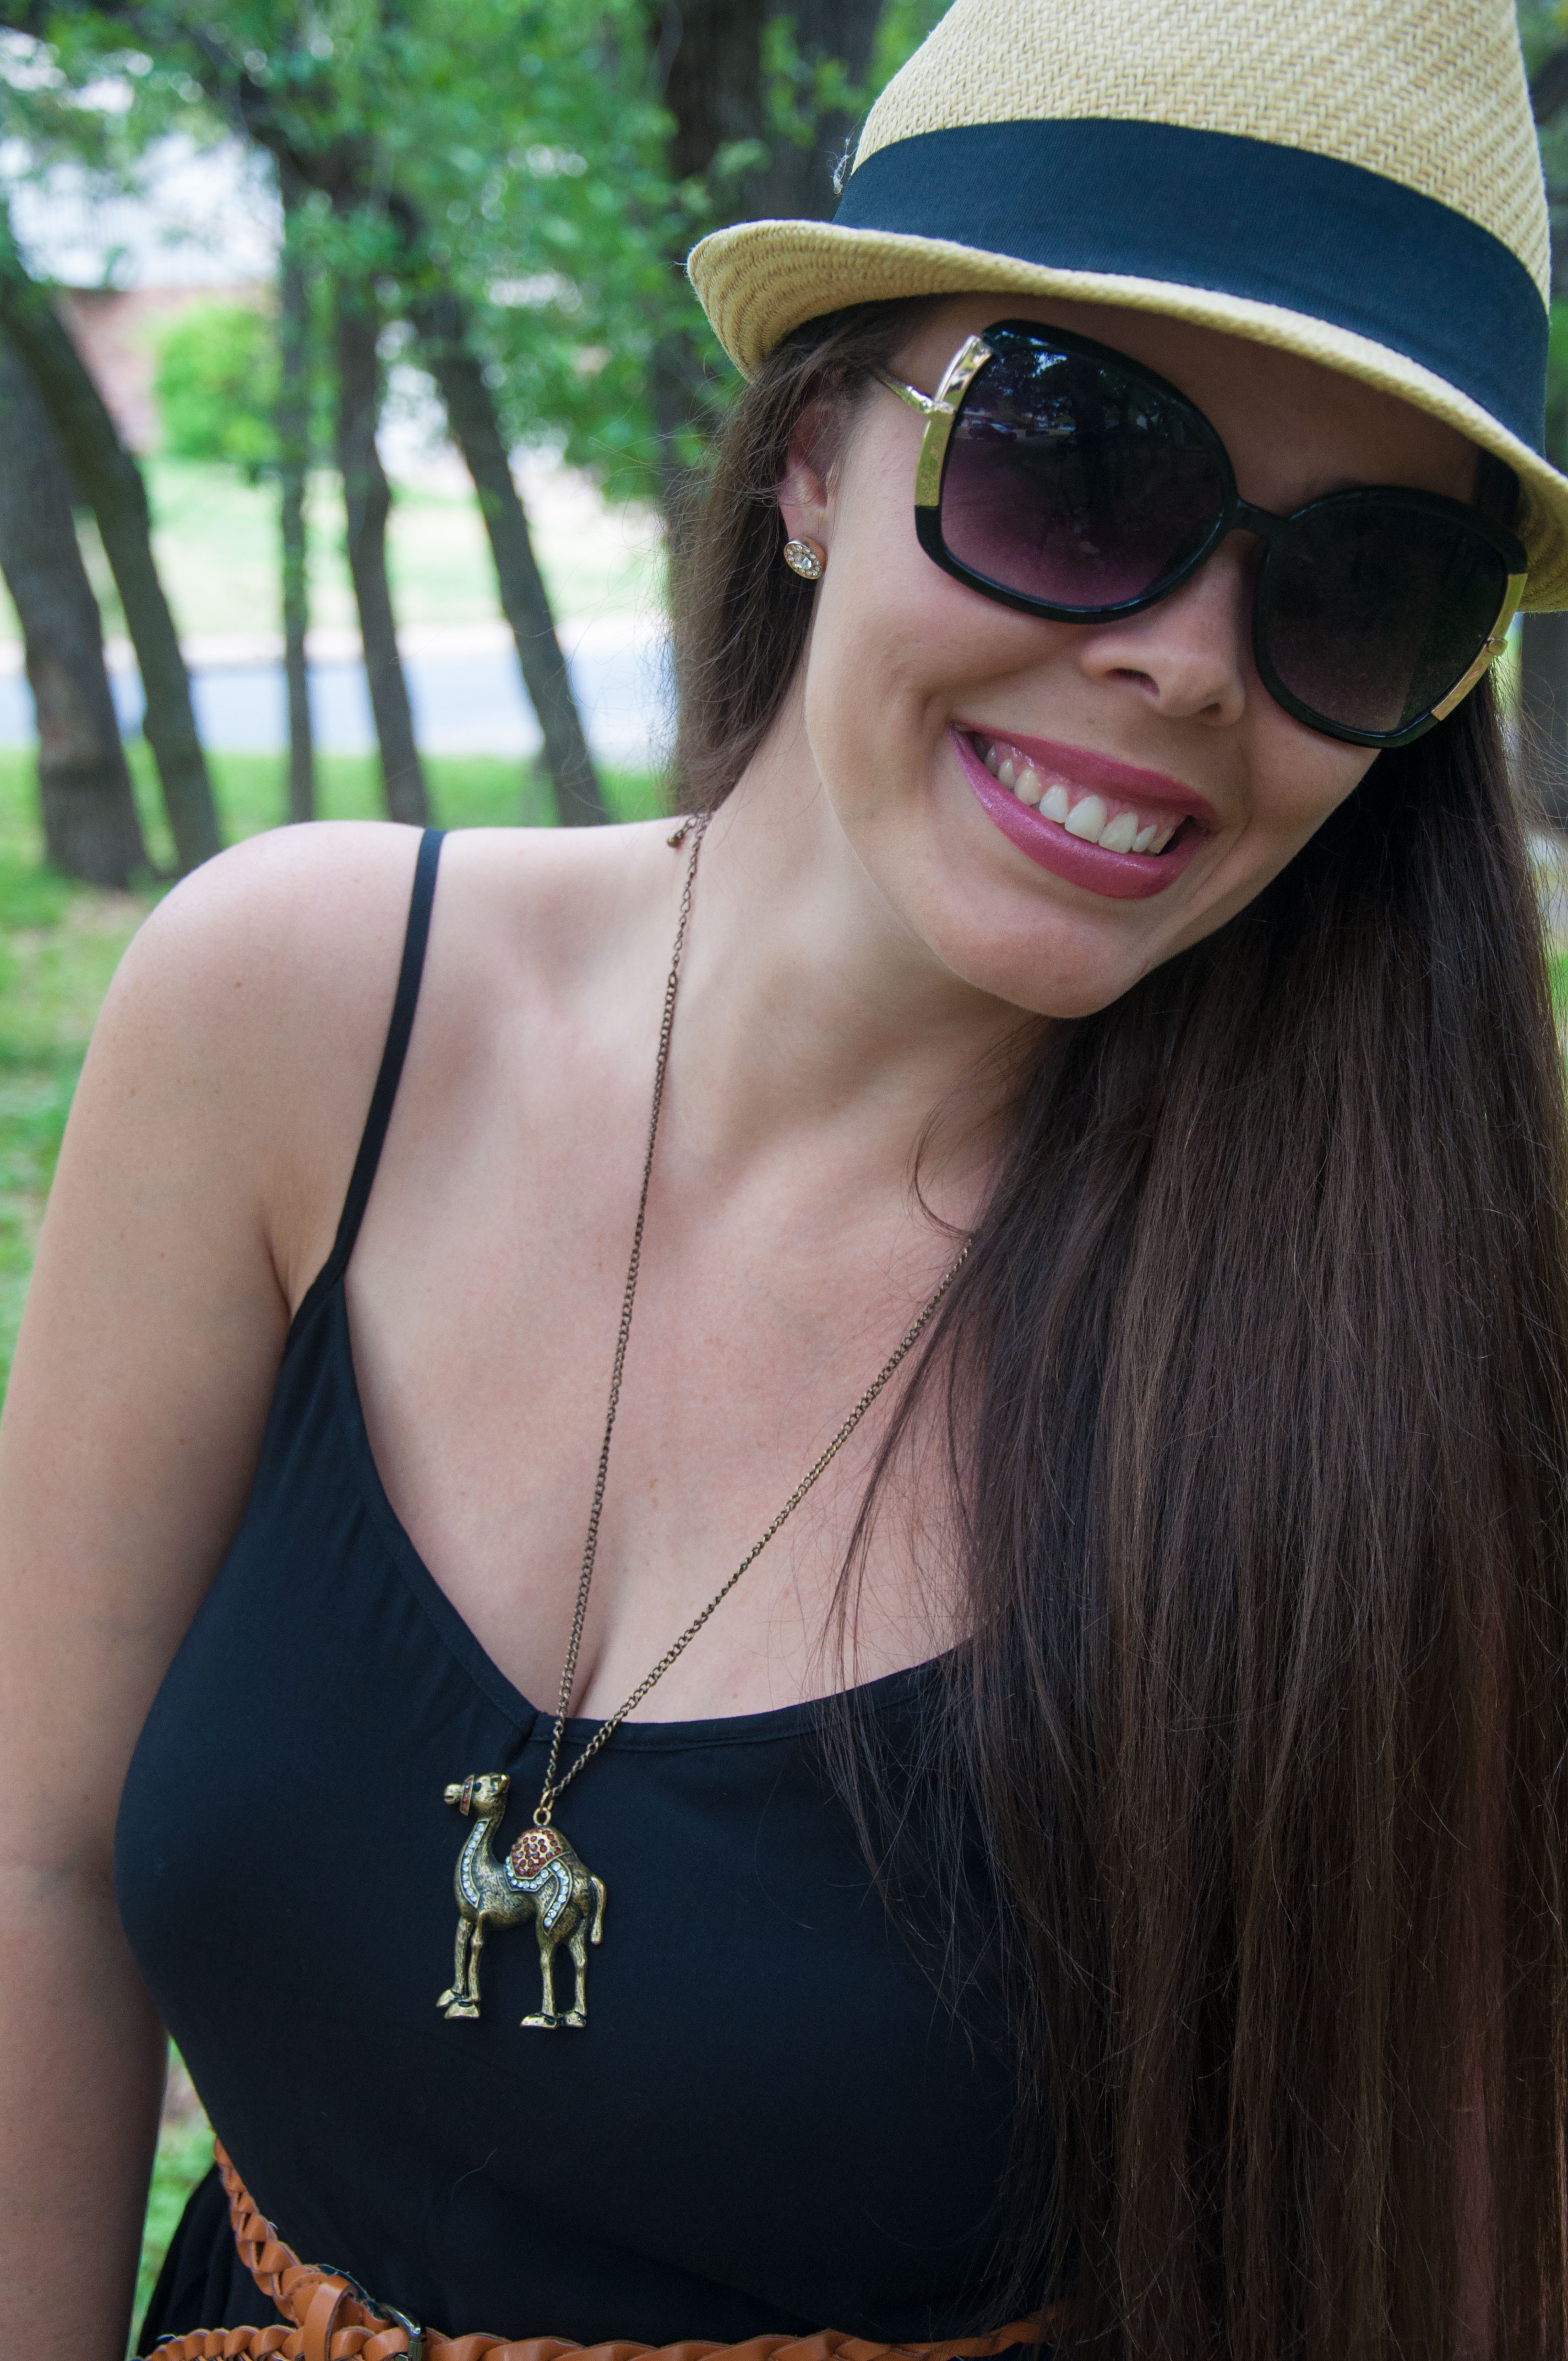 Camel necklace with a black romper and hat